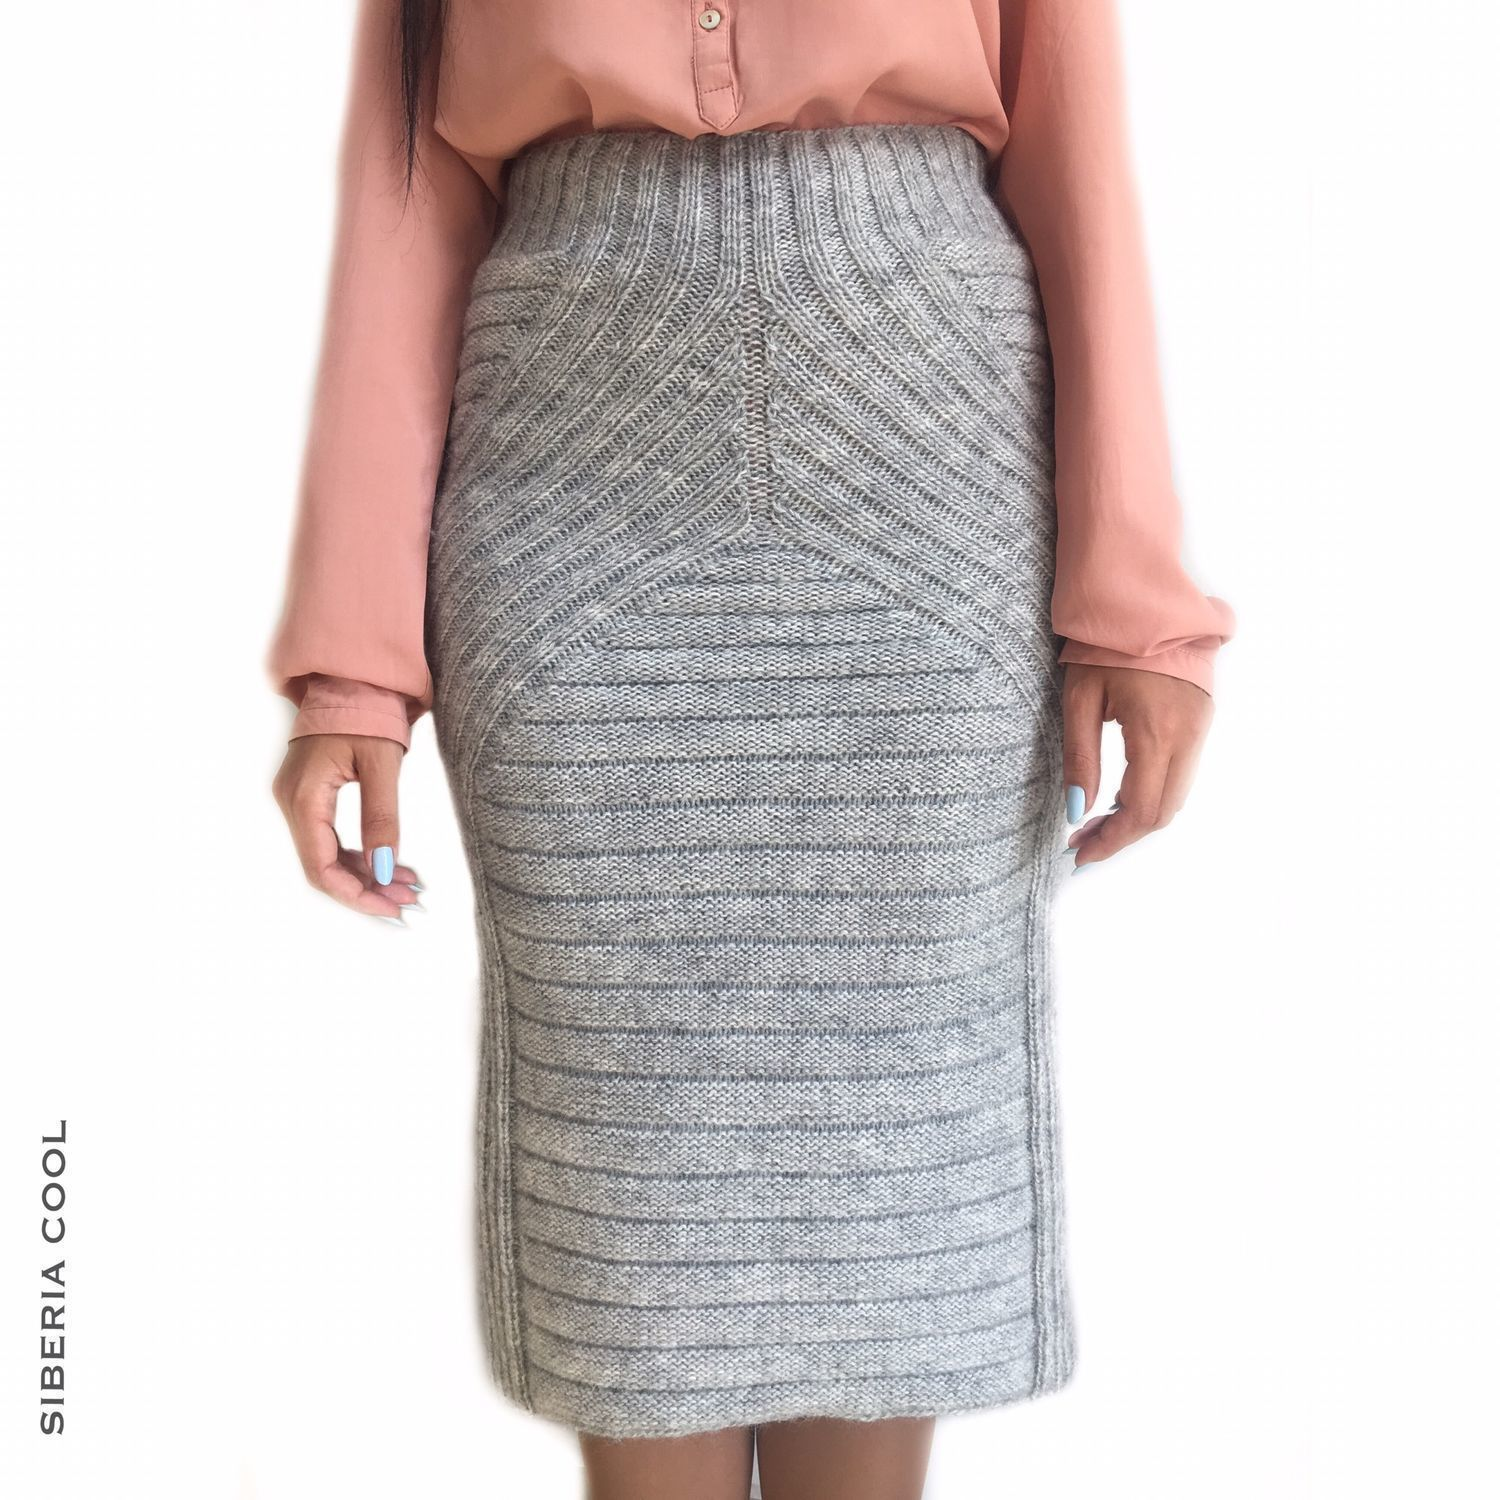 Women's skirt Rita R. 42-44 (XS-S) with wool warm for winter, Skirts, Voronezh,  Фото №1